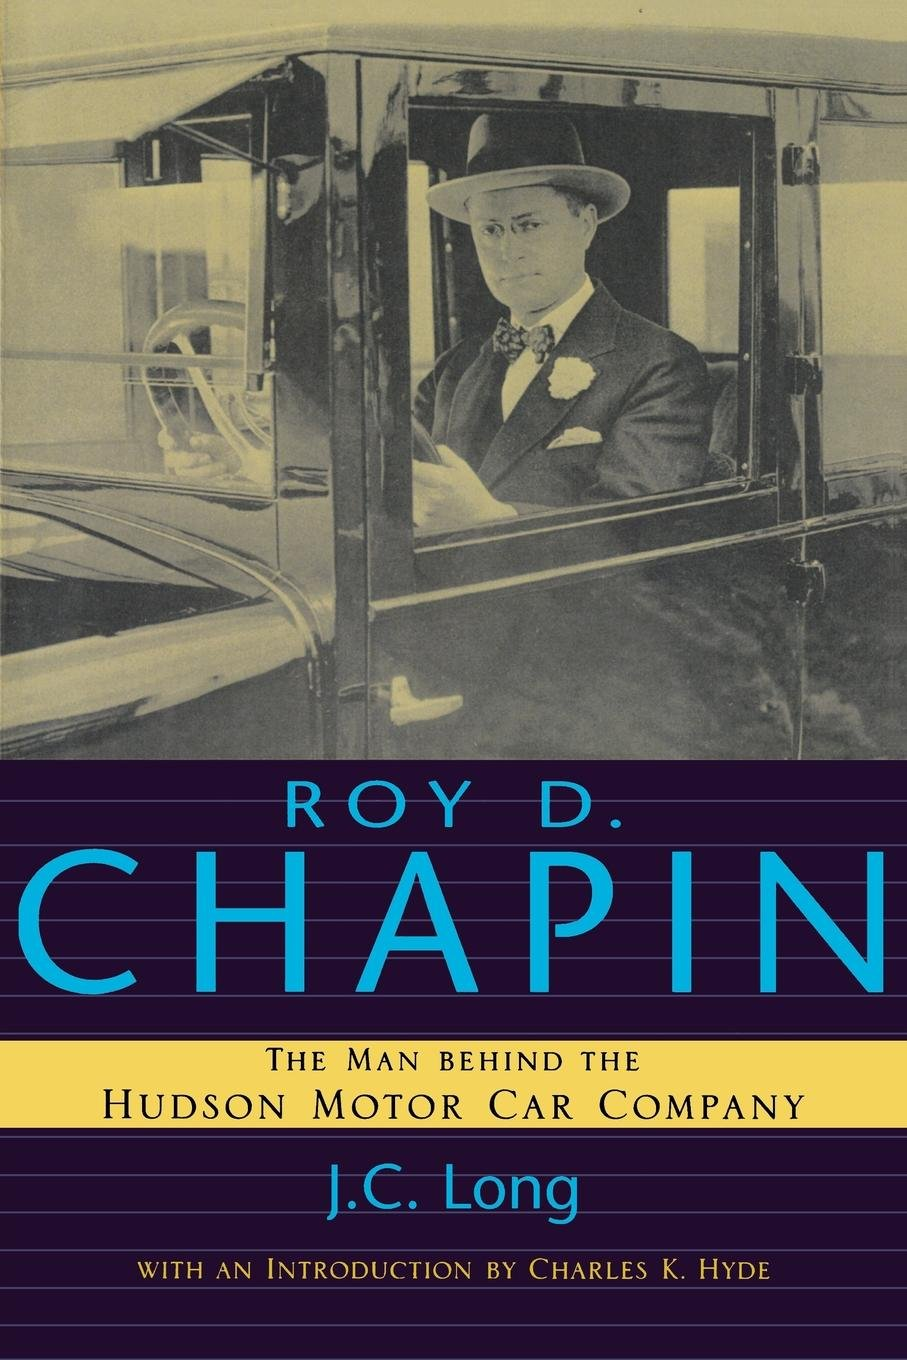 Roy D. Chapin: The Man Behind the Hudson Motor Car Company (Great Lakes Books Series)